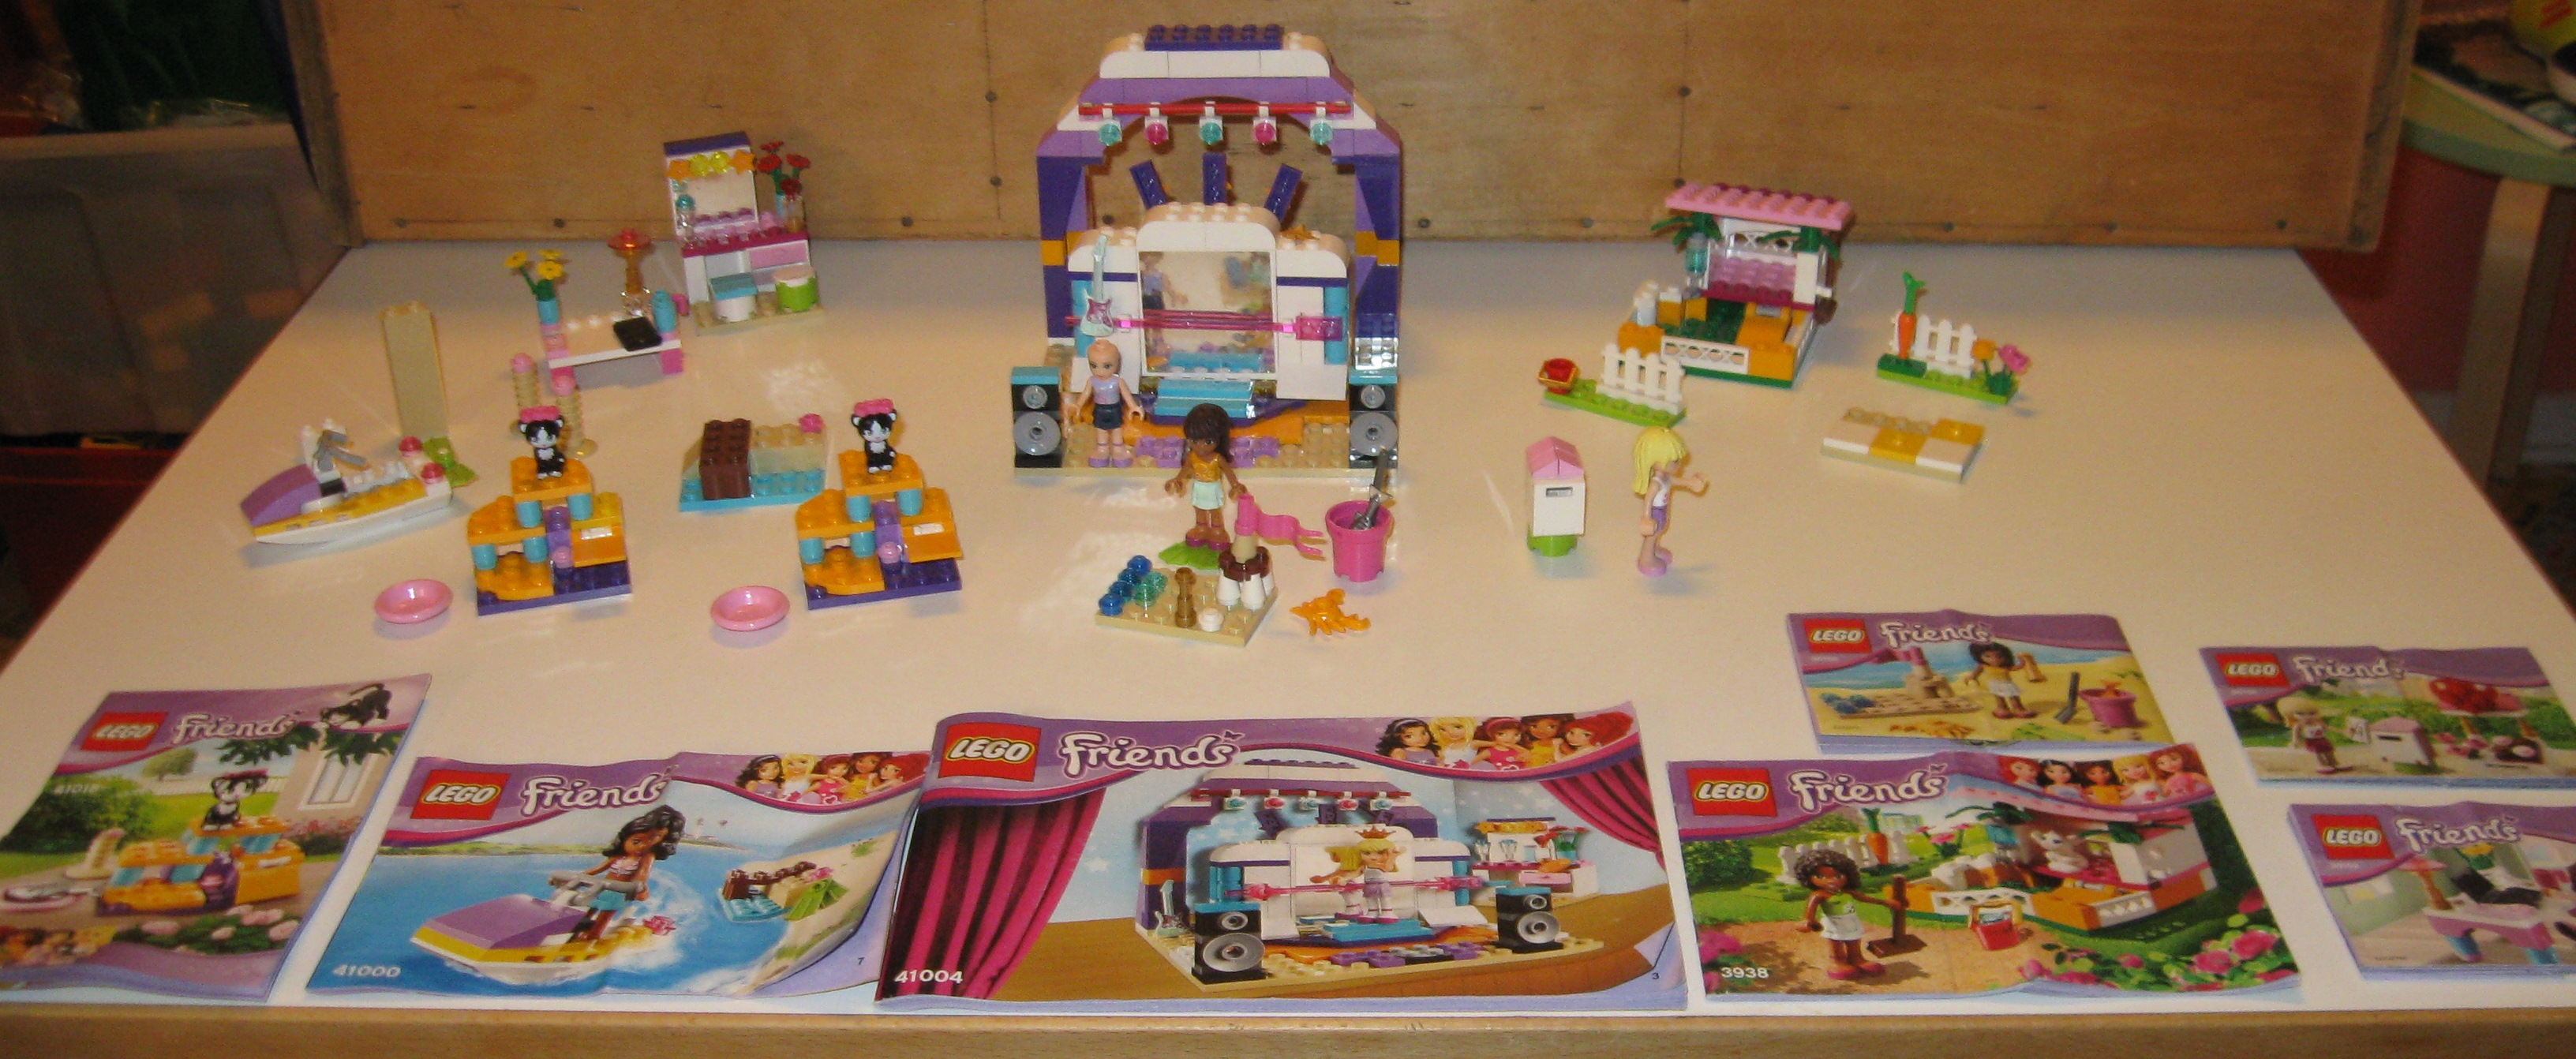 Lego Friends løsdele